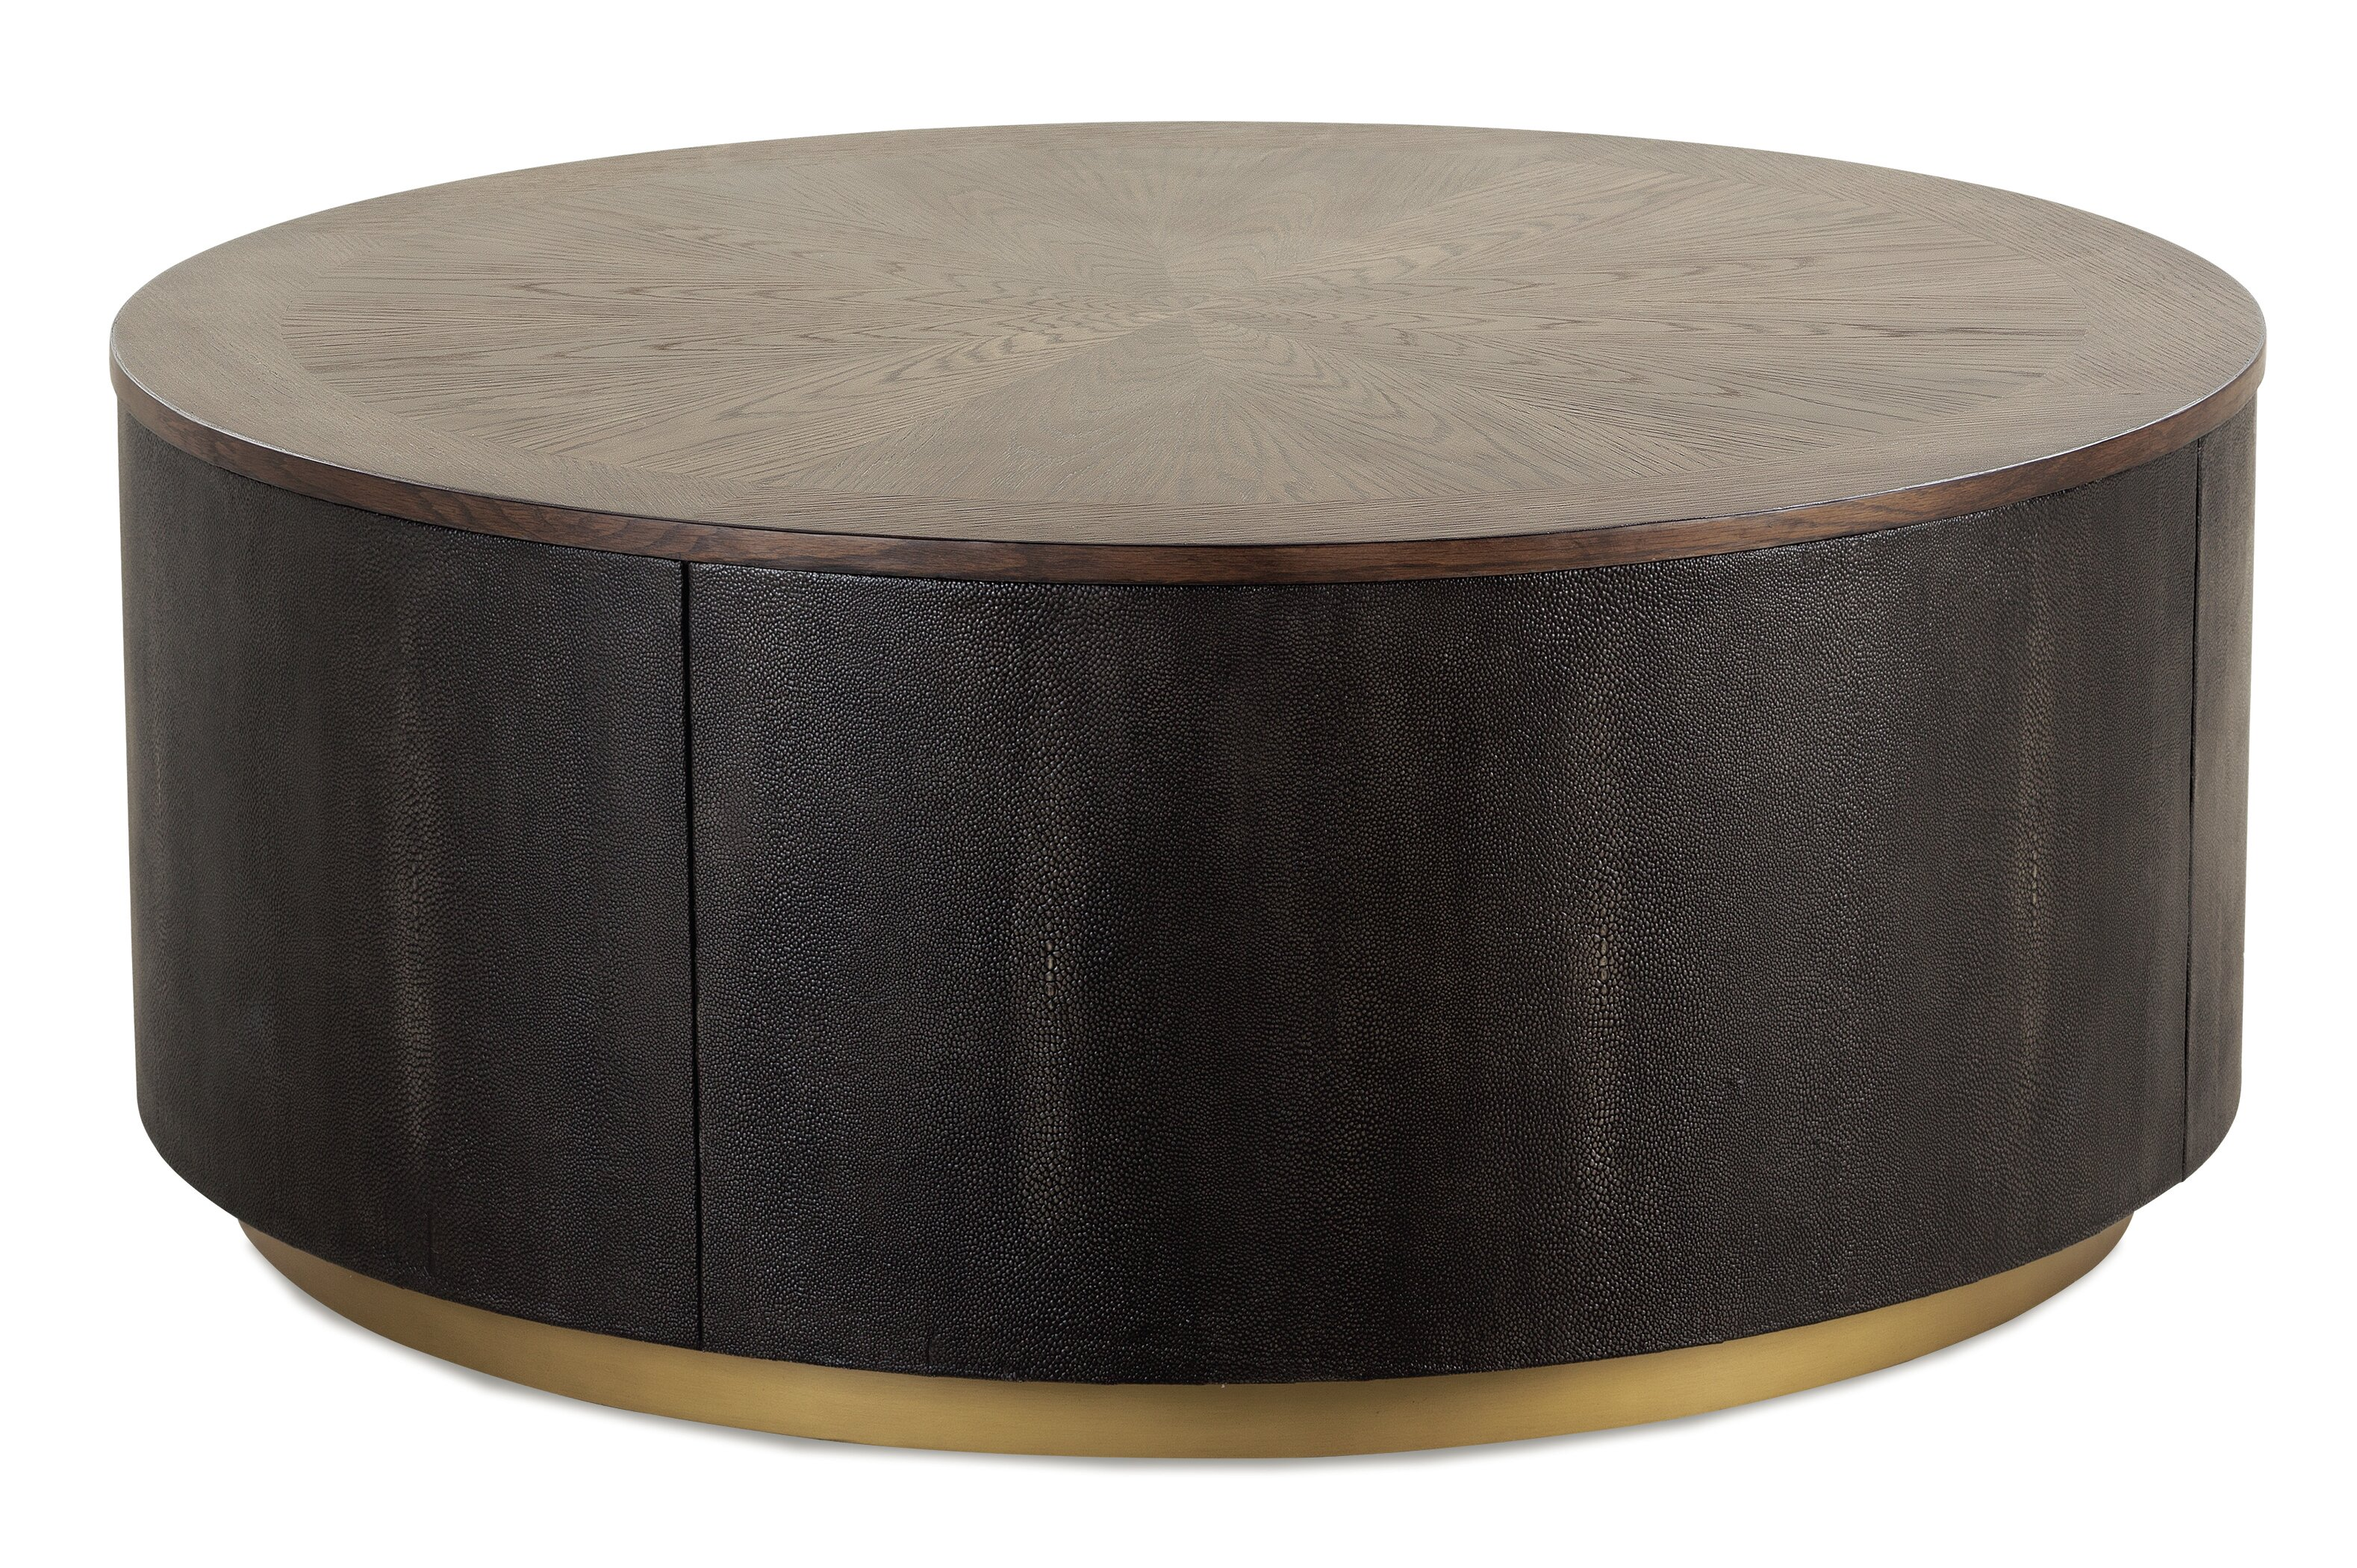 Brass Drum Coffee Tables You Ll Love In 2021 Wayfair